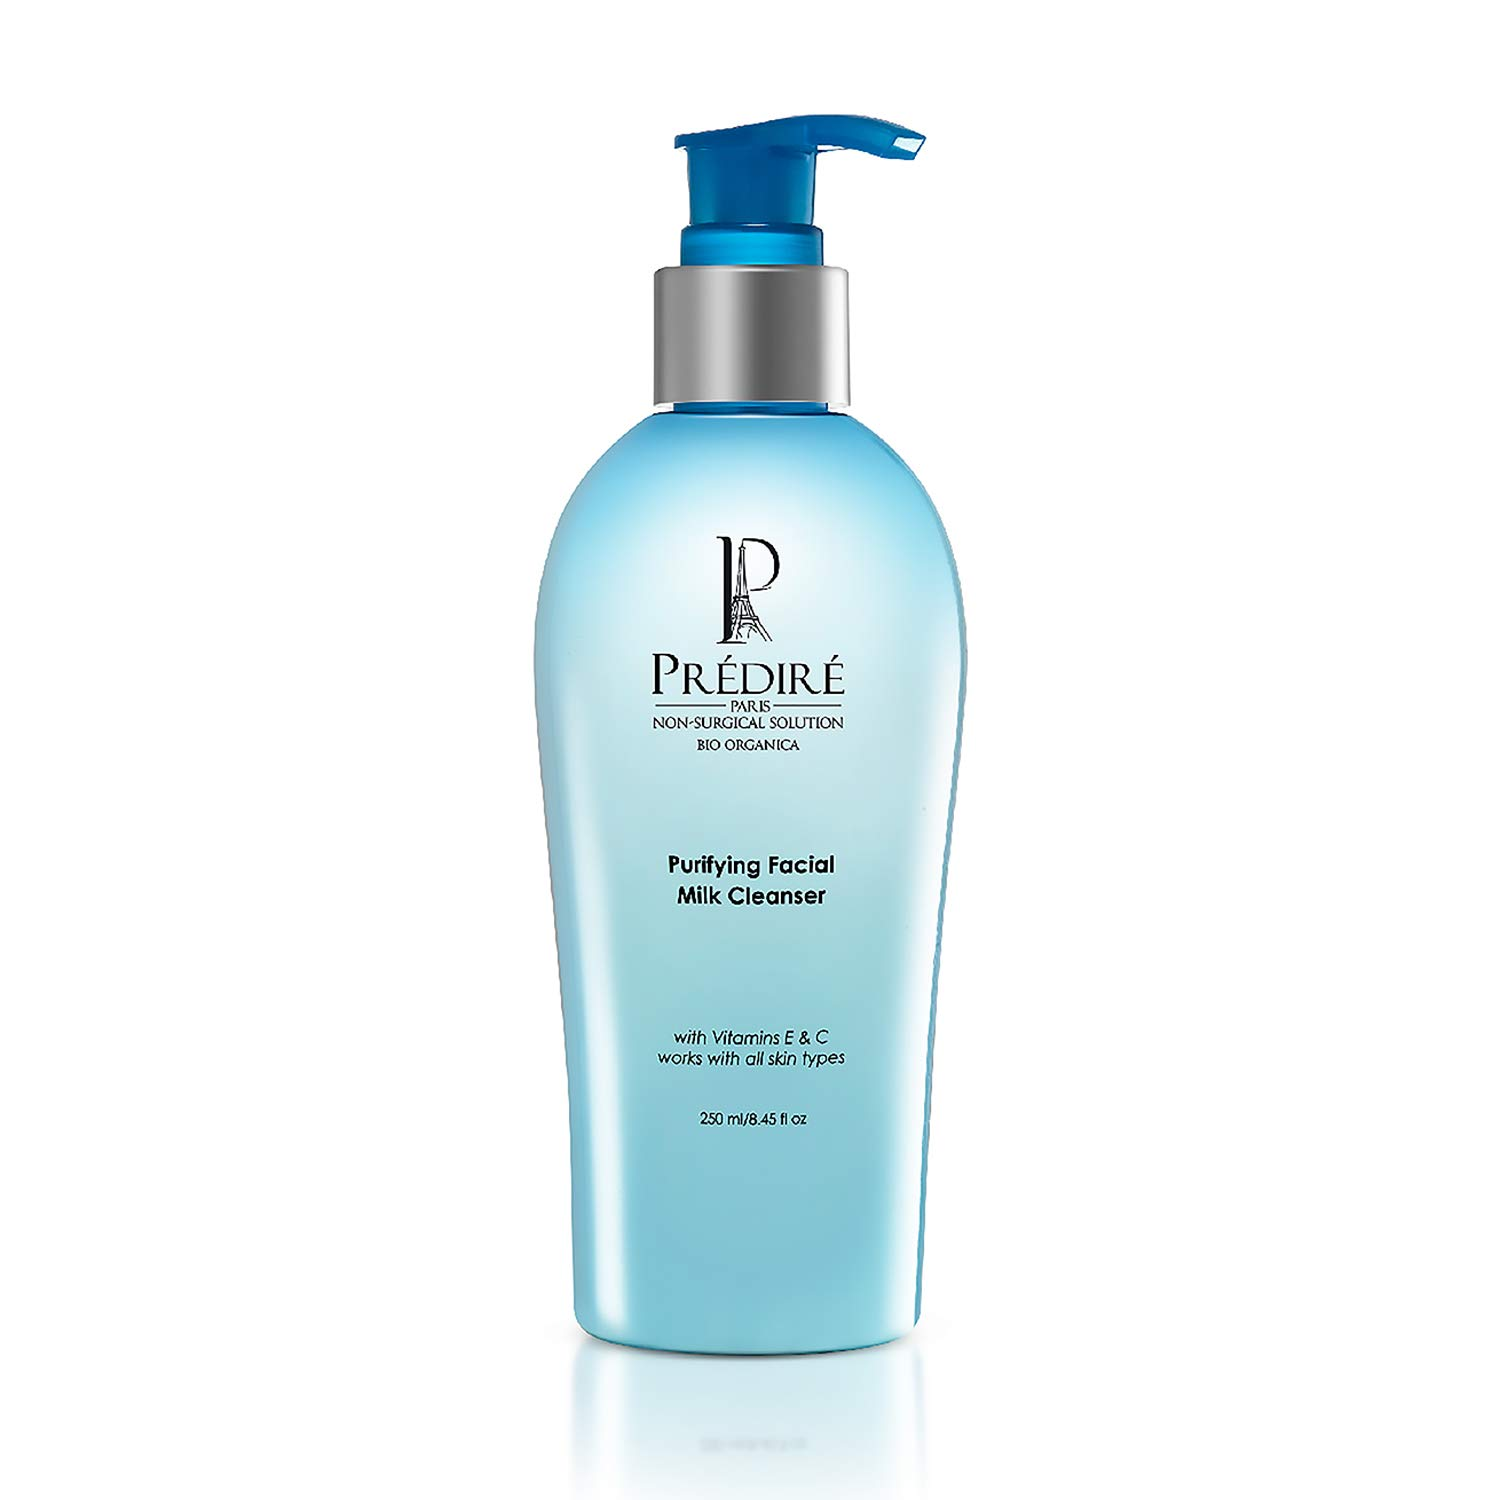 Purifying Facial Milk cleanser 250ML by Predire